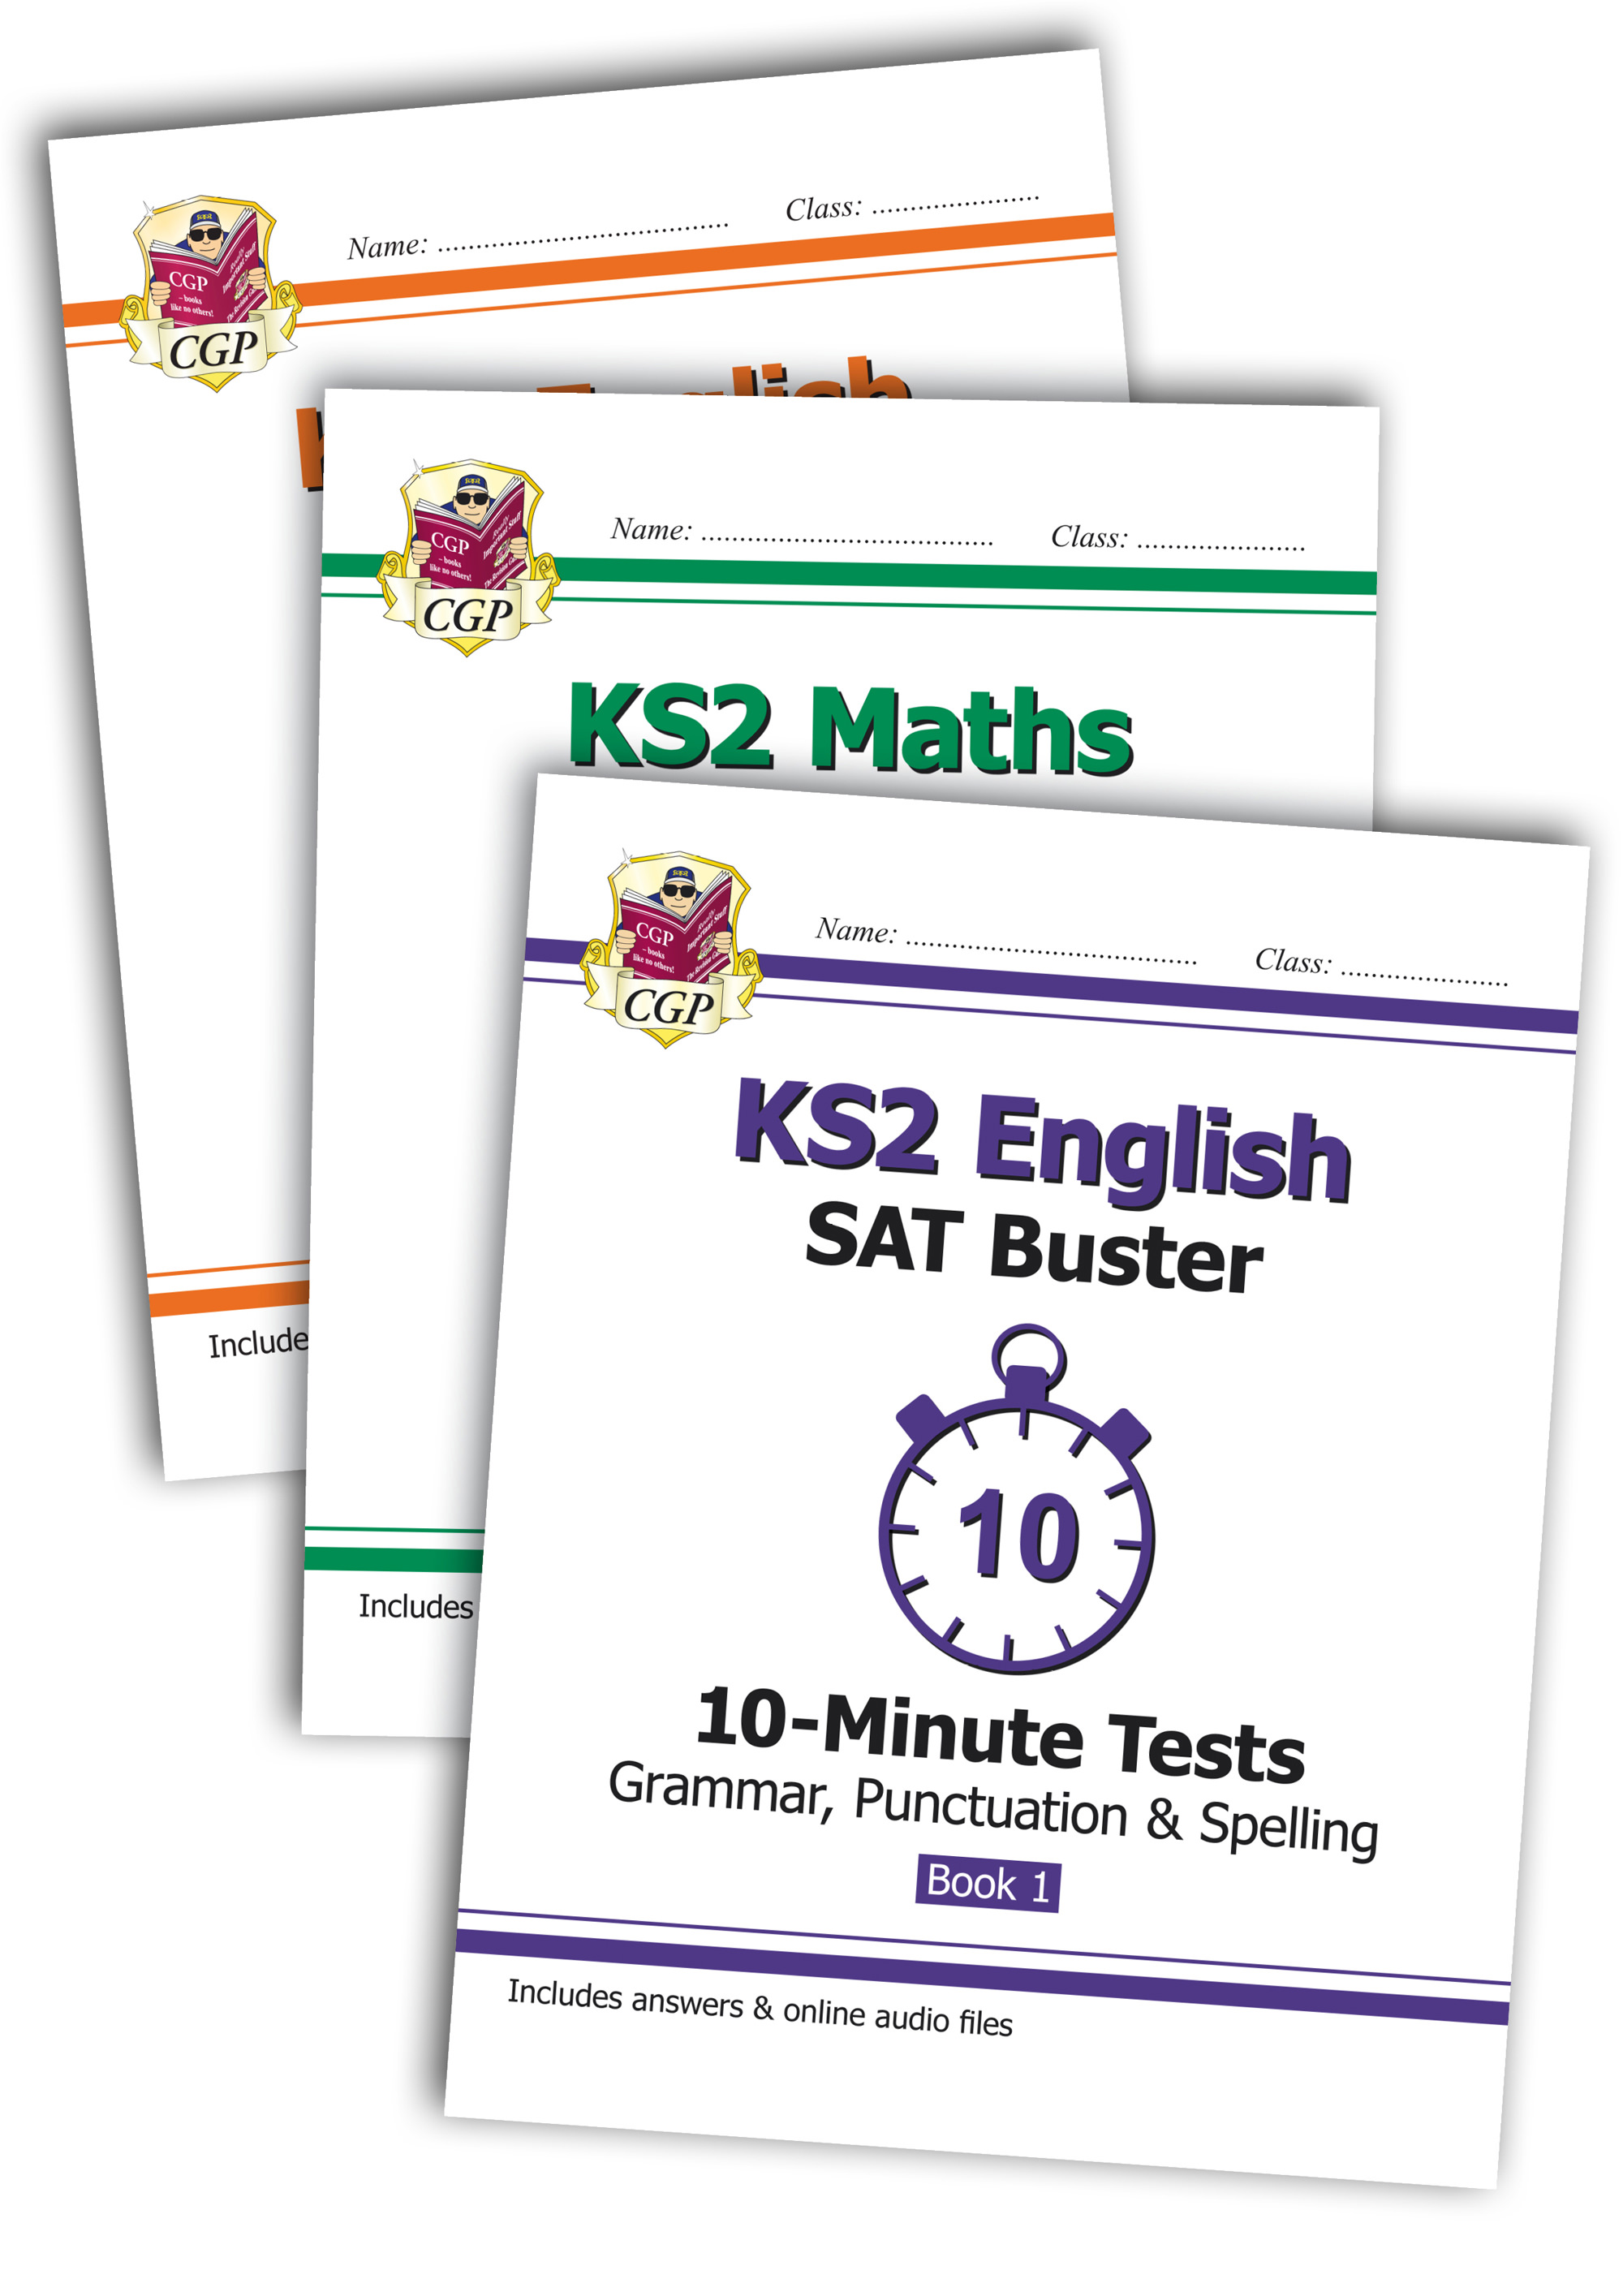 EMXB23 - The Complete KS2 Maths and English 10-Minute Test SAT Buster Book 1 Bundle (for the 2020 te